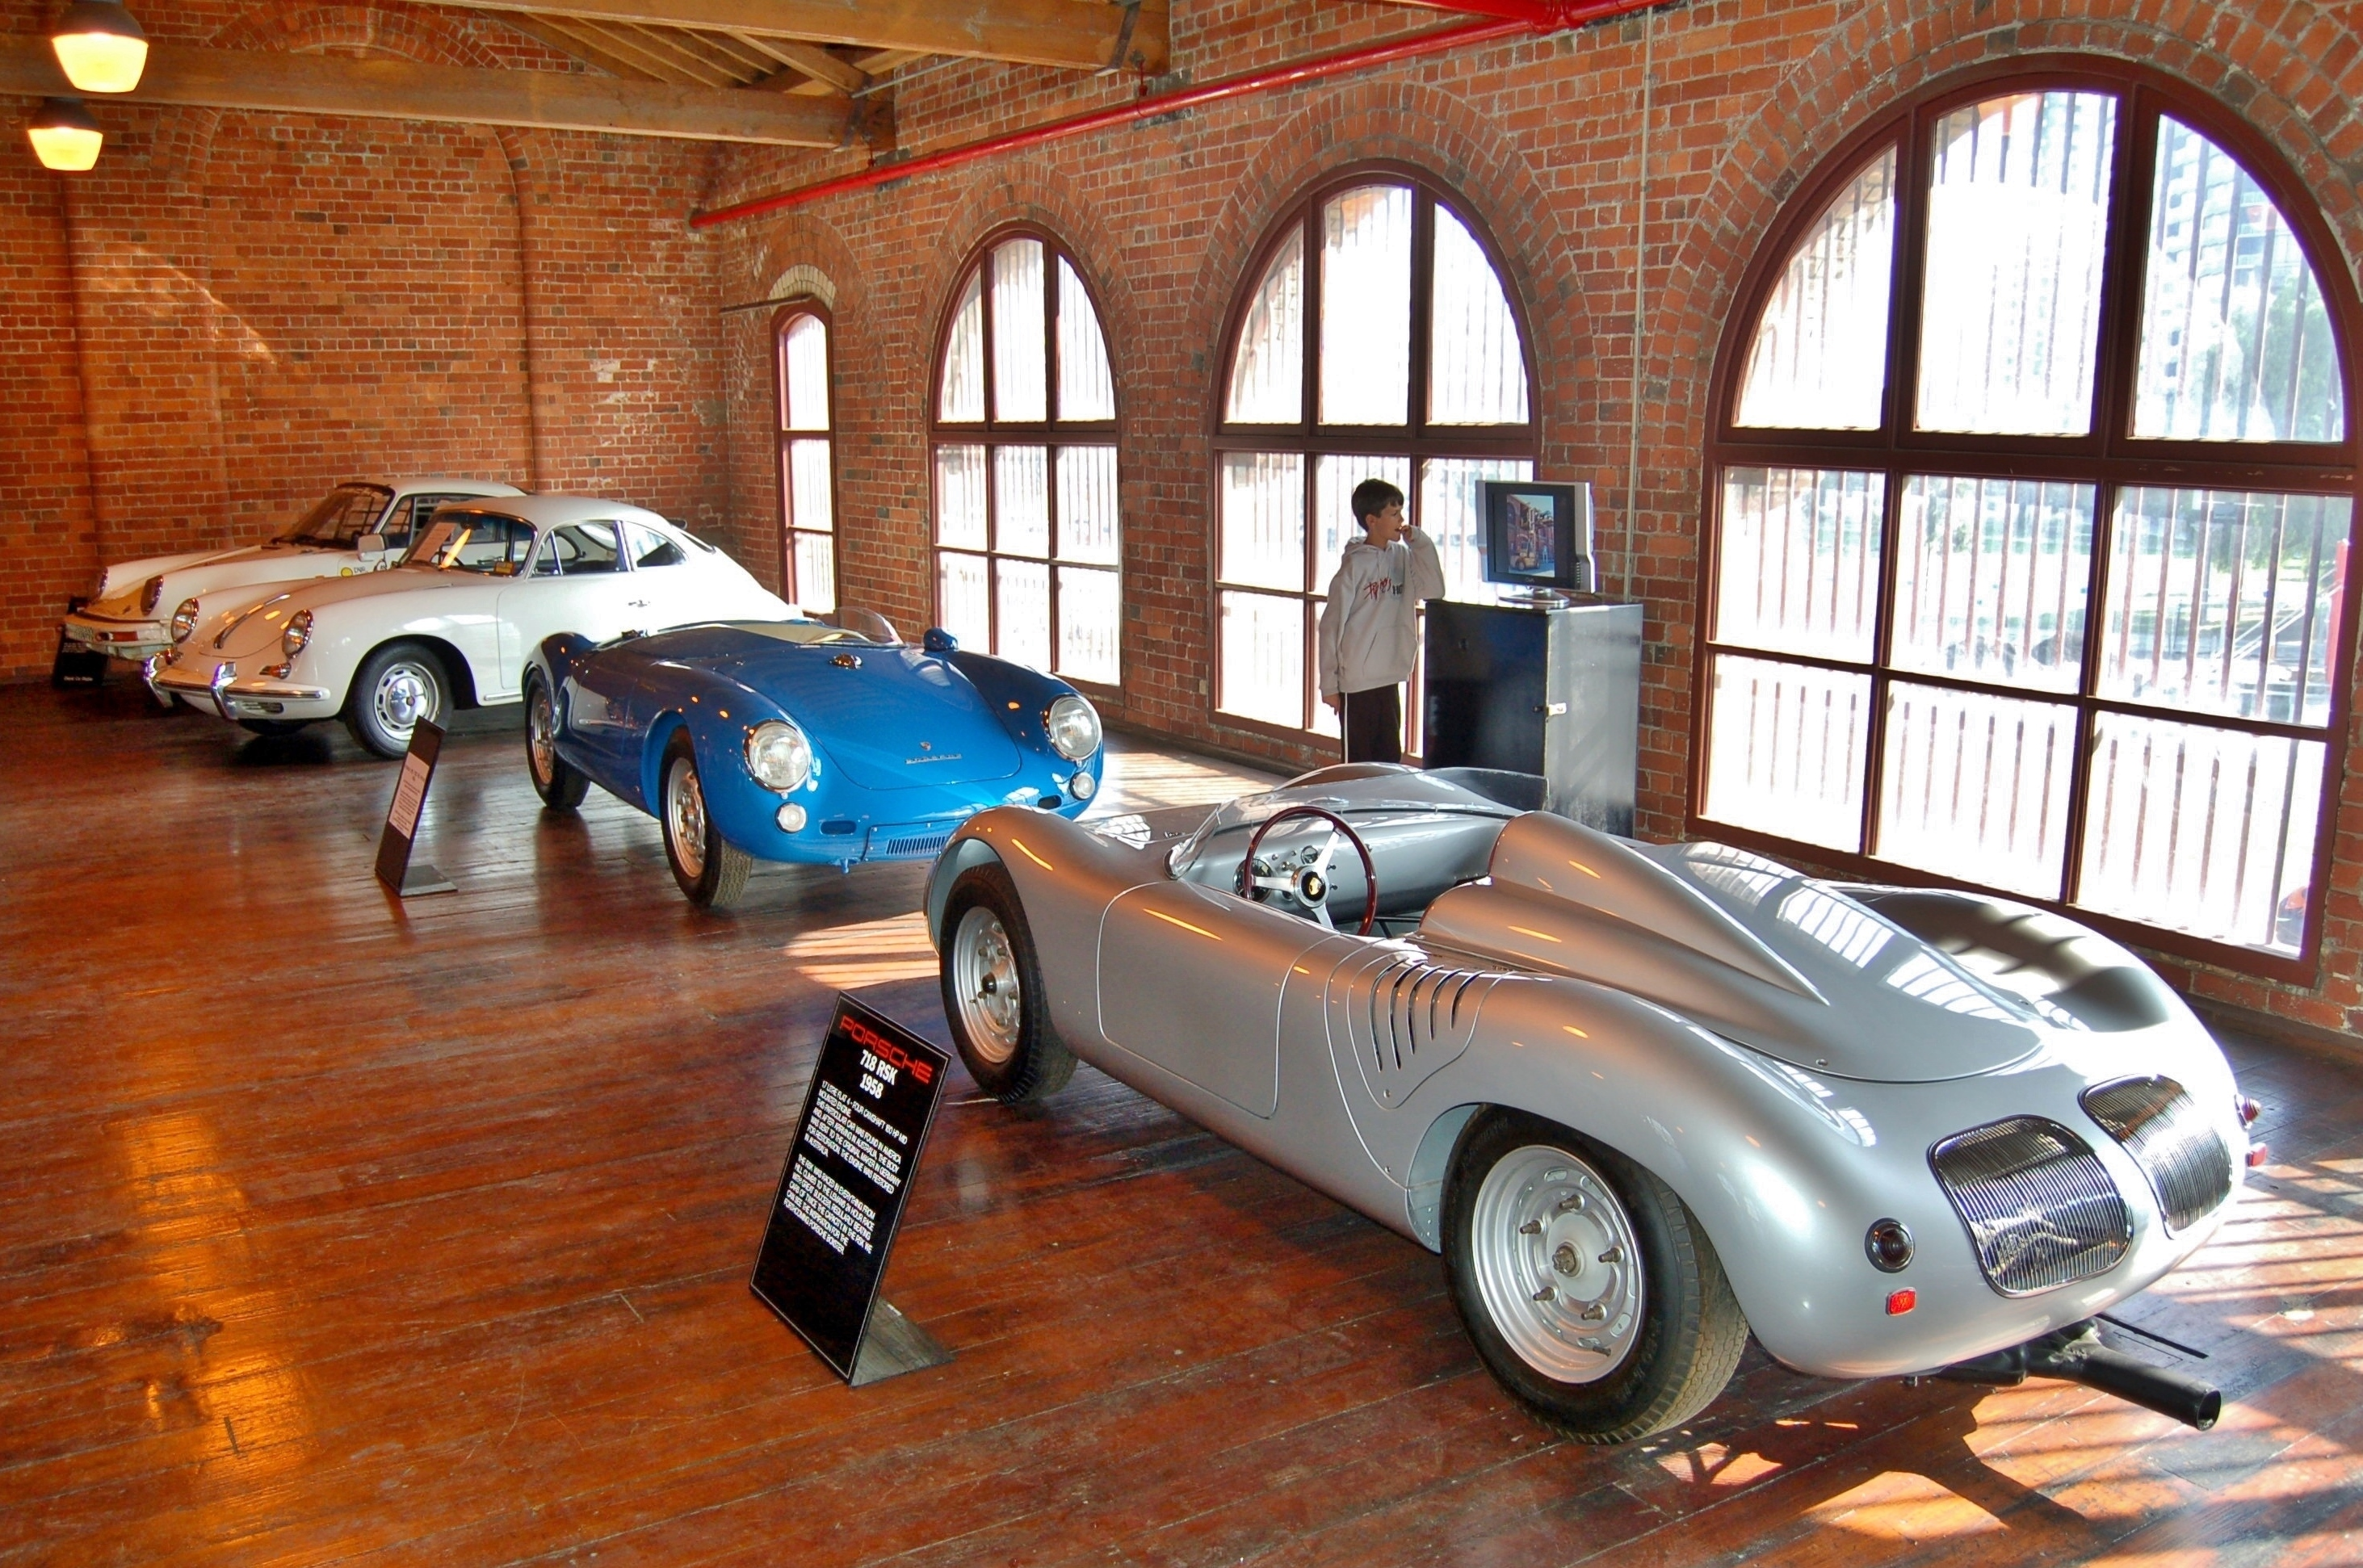 File:Fox Classic Car Collection, 2008 (06).JPG - Wikimedia Commons